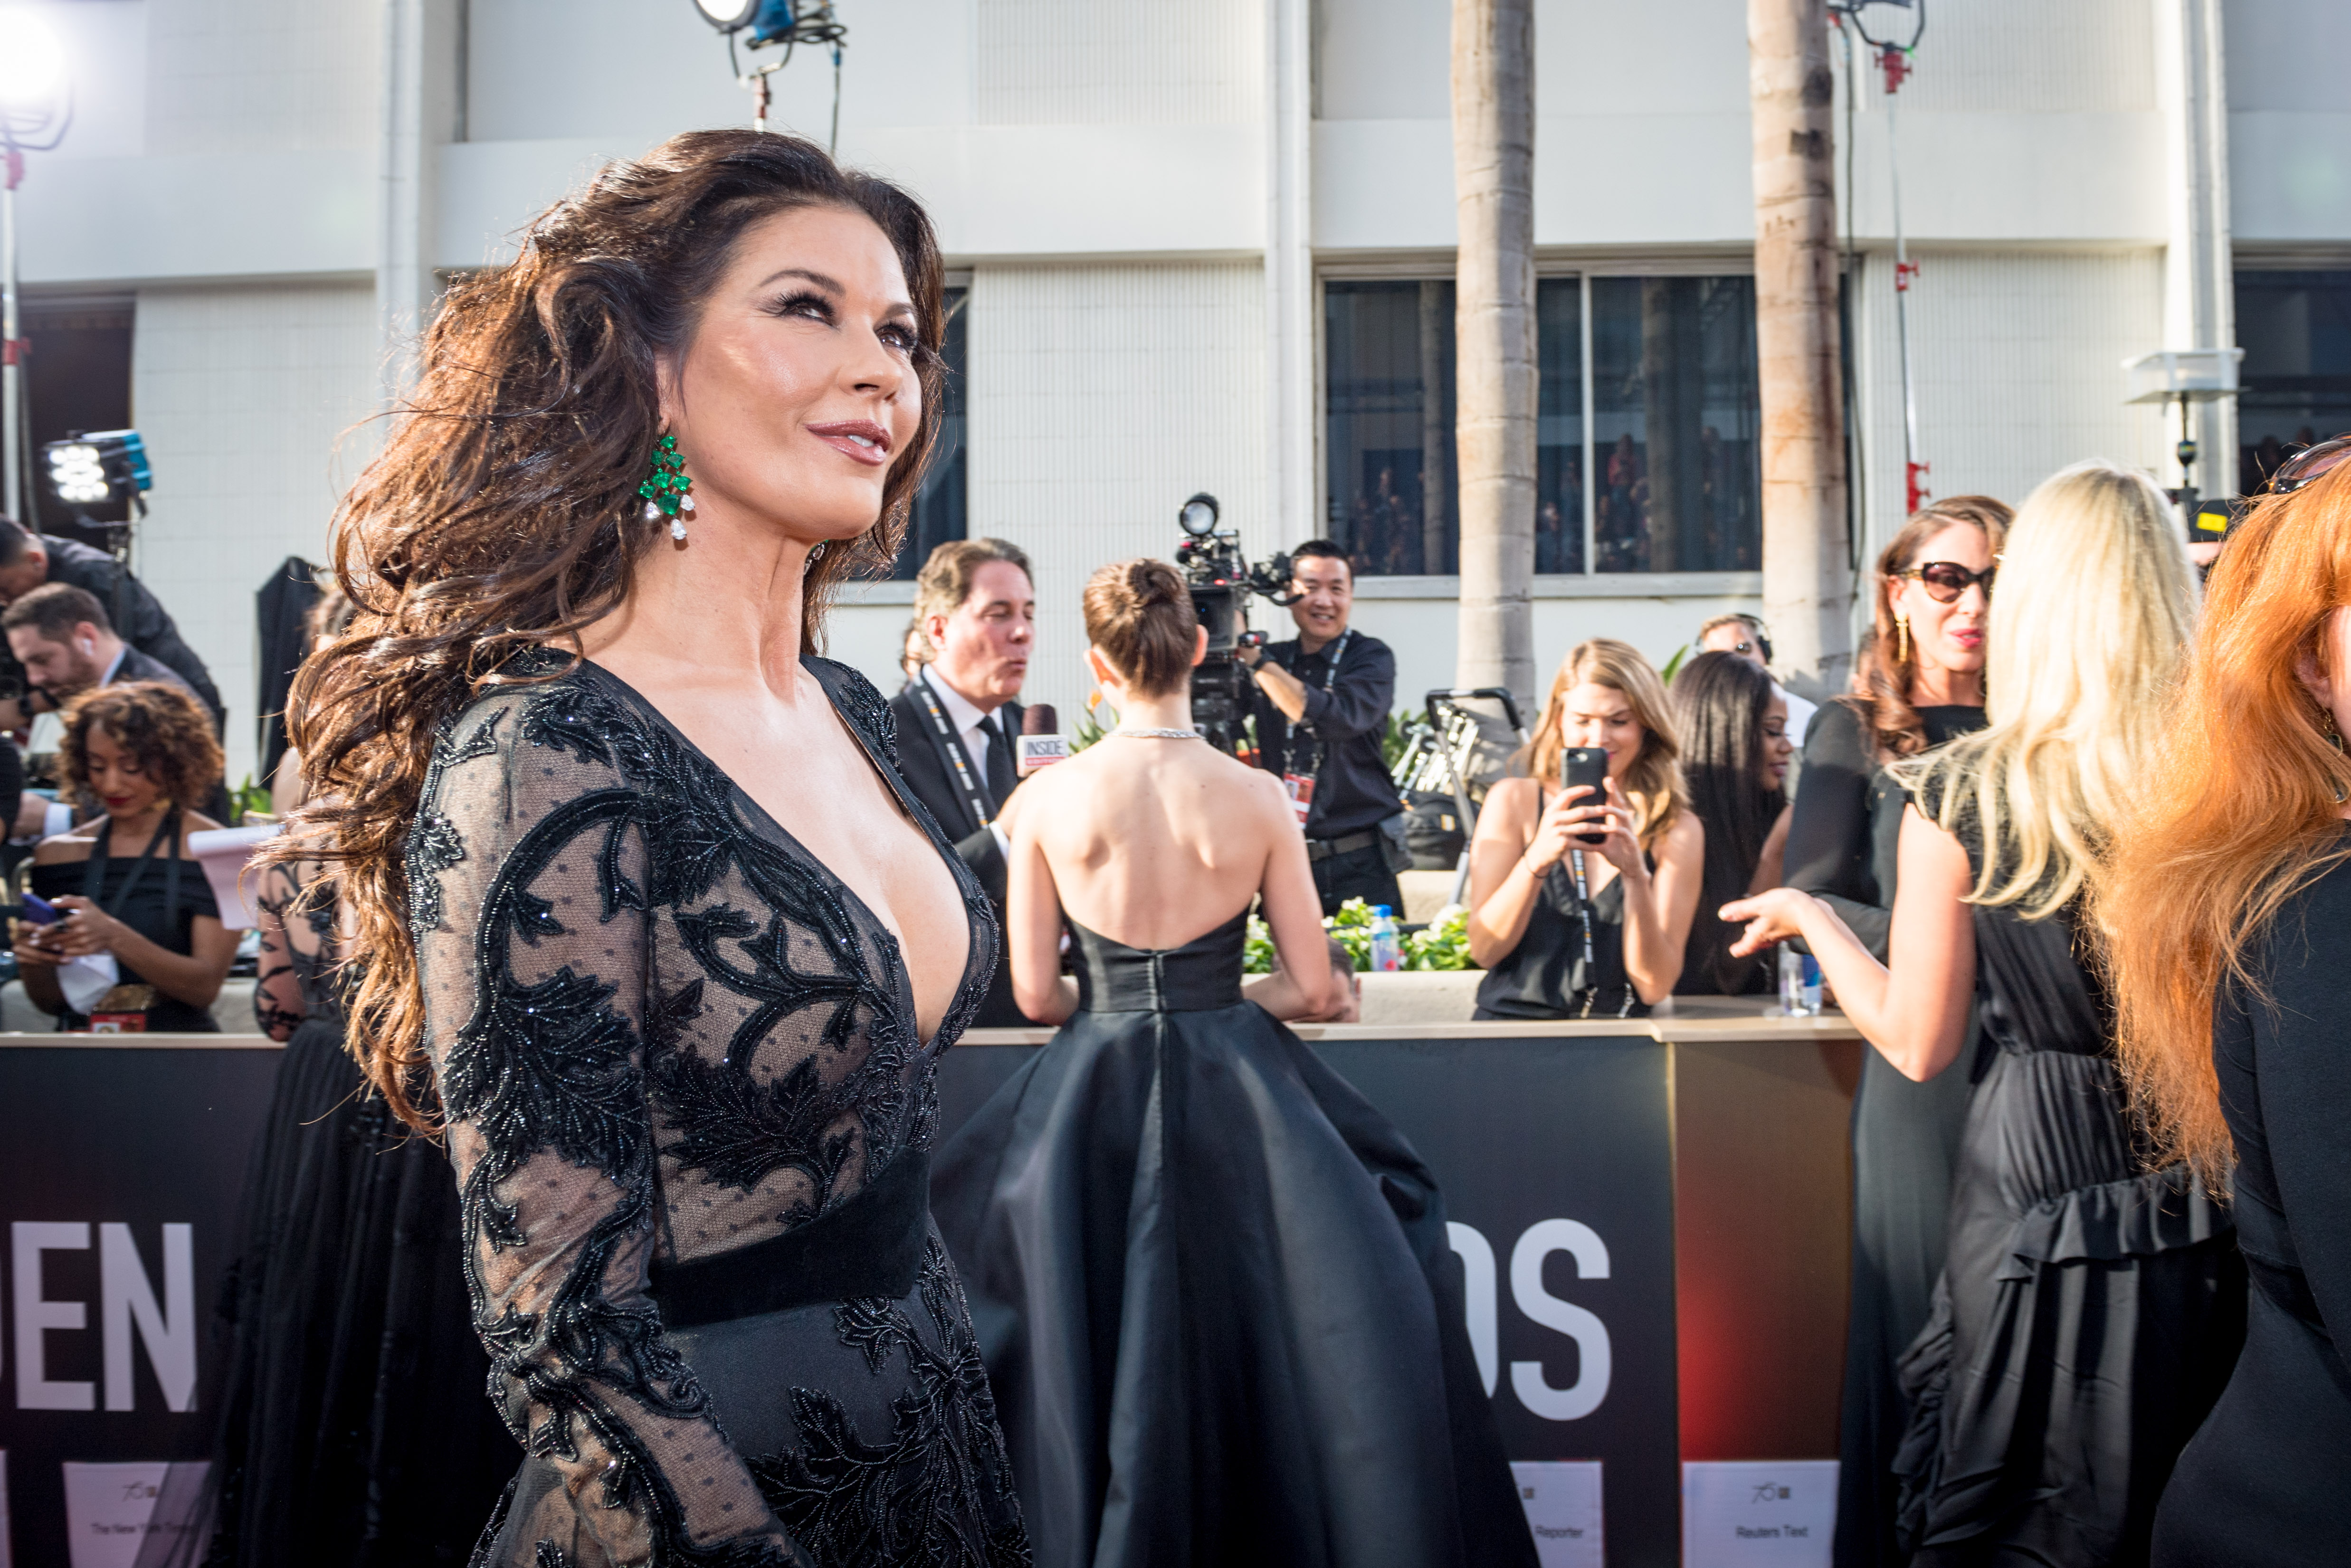 Cathrine Zeta Jones arrives at the 75th Annual Golden Globes Awards at the Beverly Hilton in Beverly Hills, CA on Sunday, January 7, 2018.